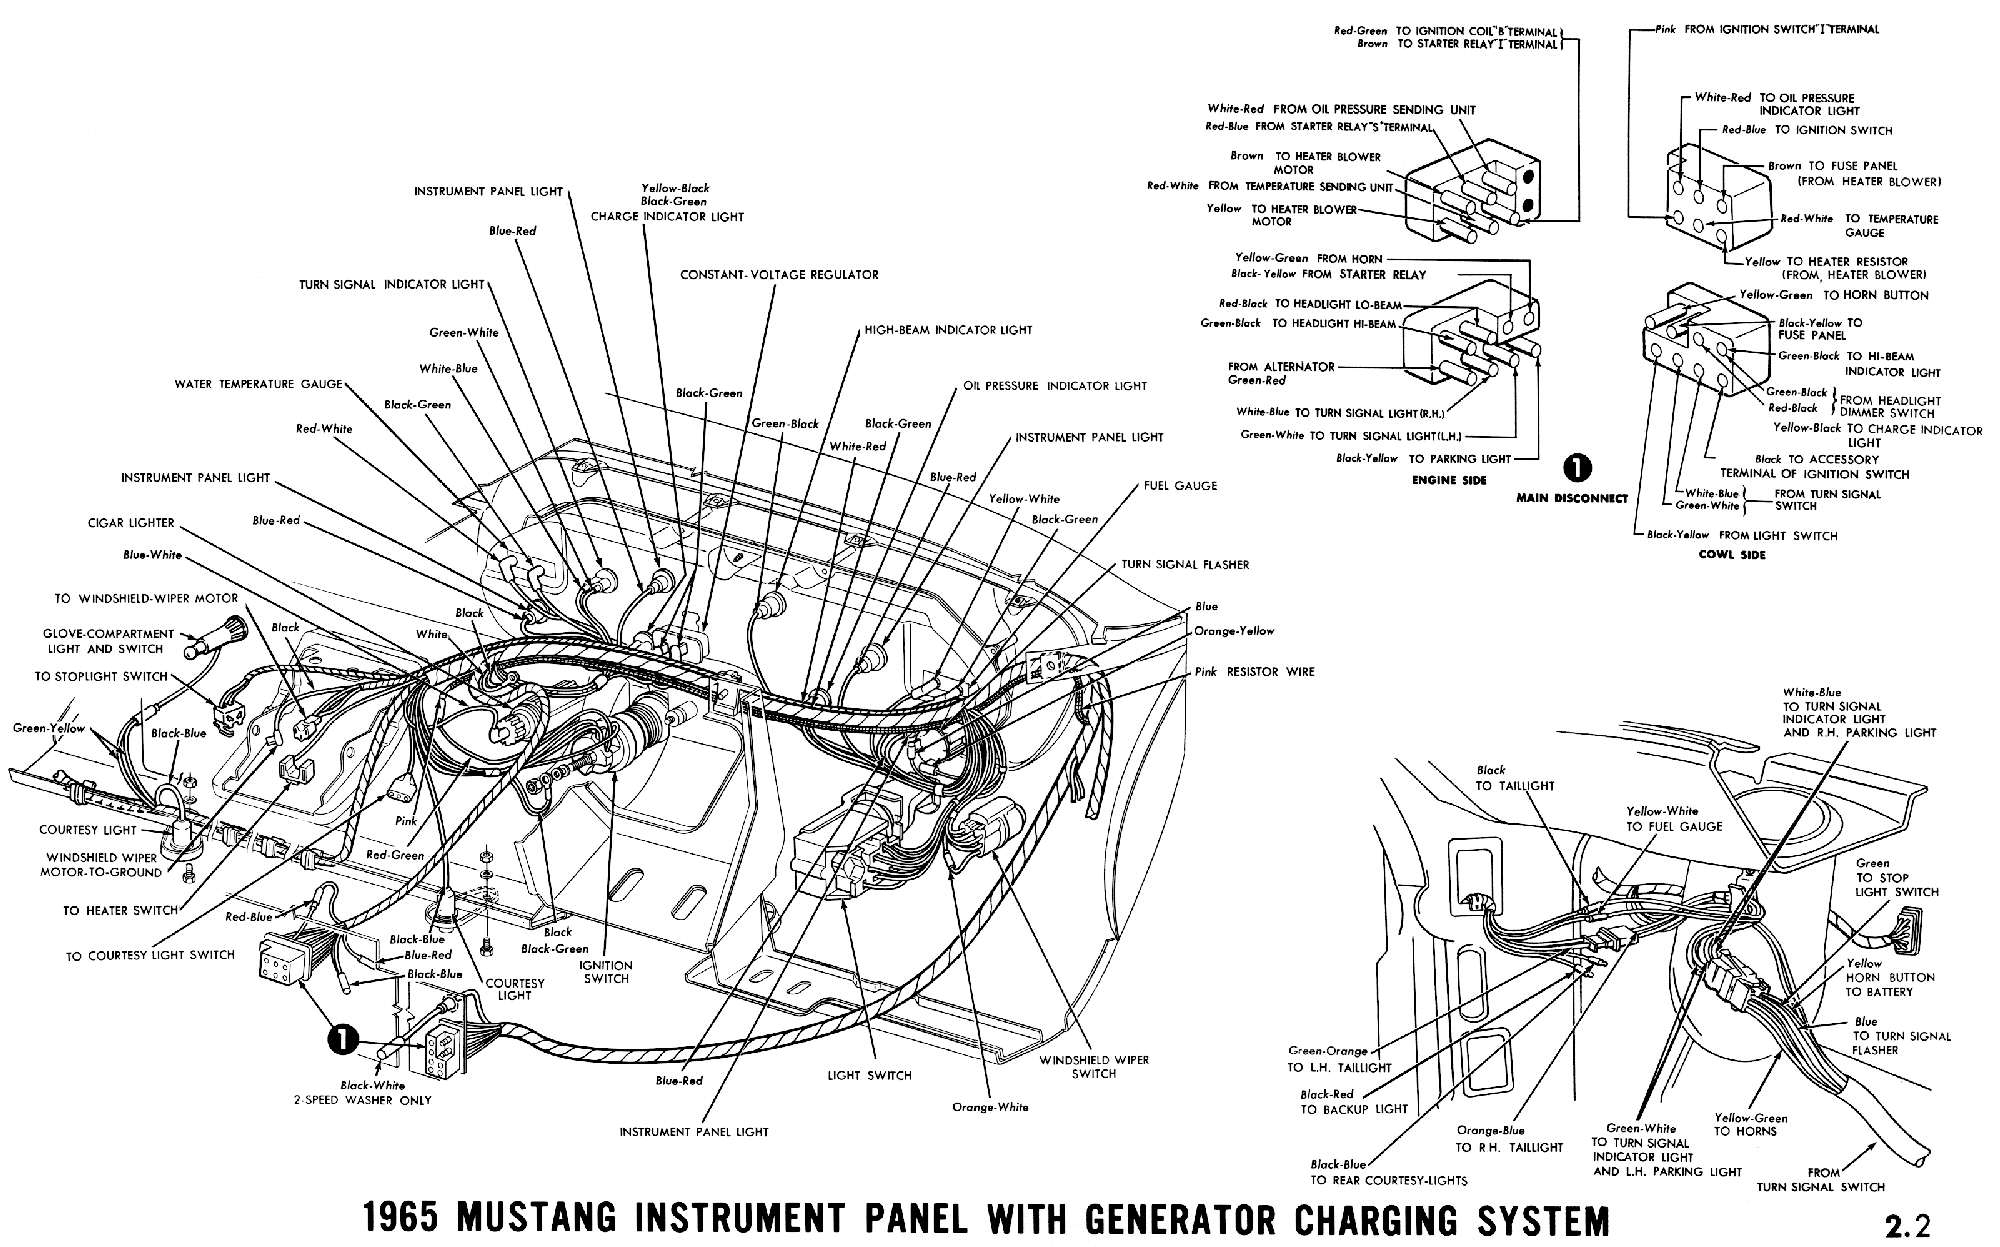 Wiring Harness For 1965 Mustang - Wiring Diagram Data - Mercury 8 Pin Wiring Harness Diagram